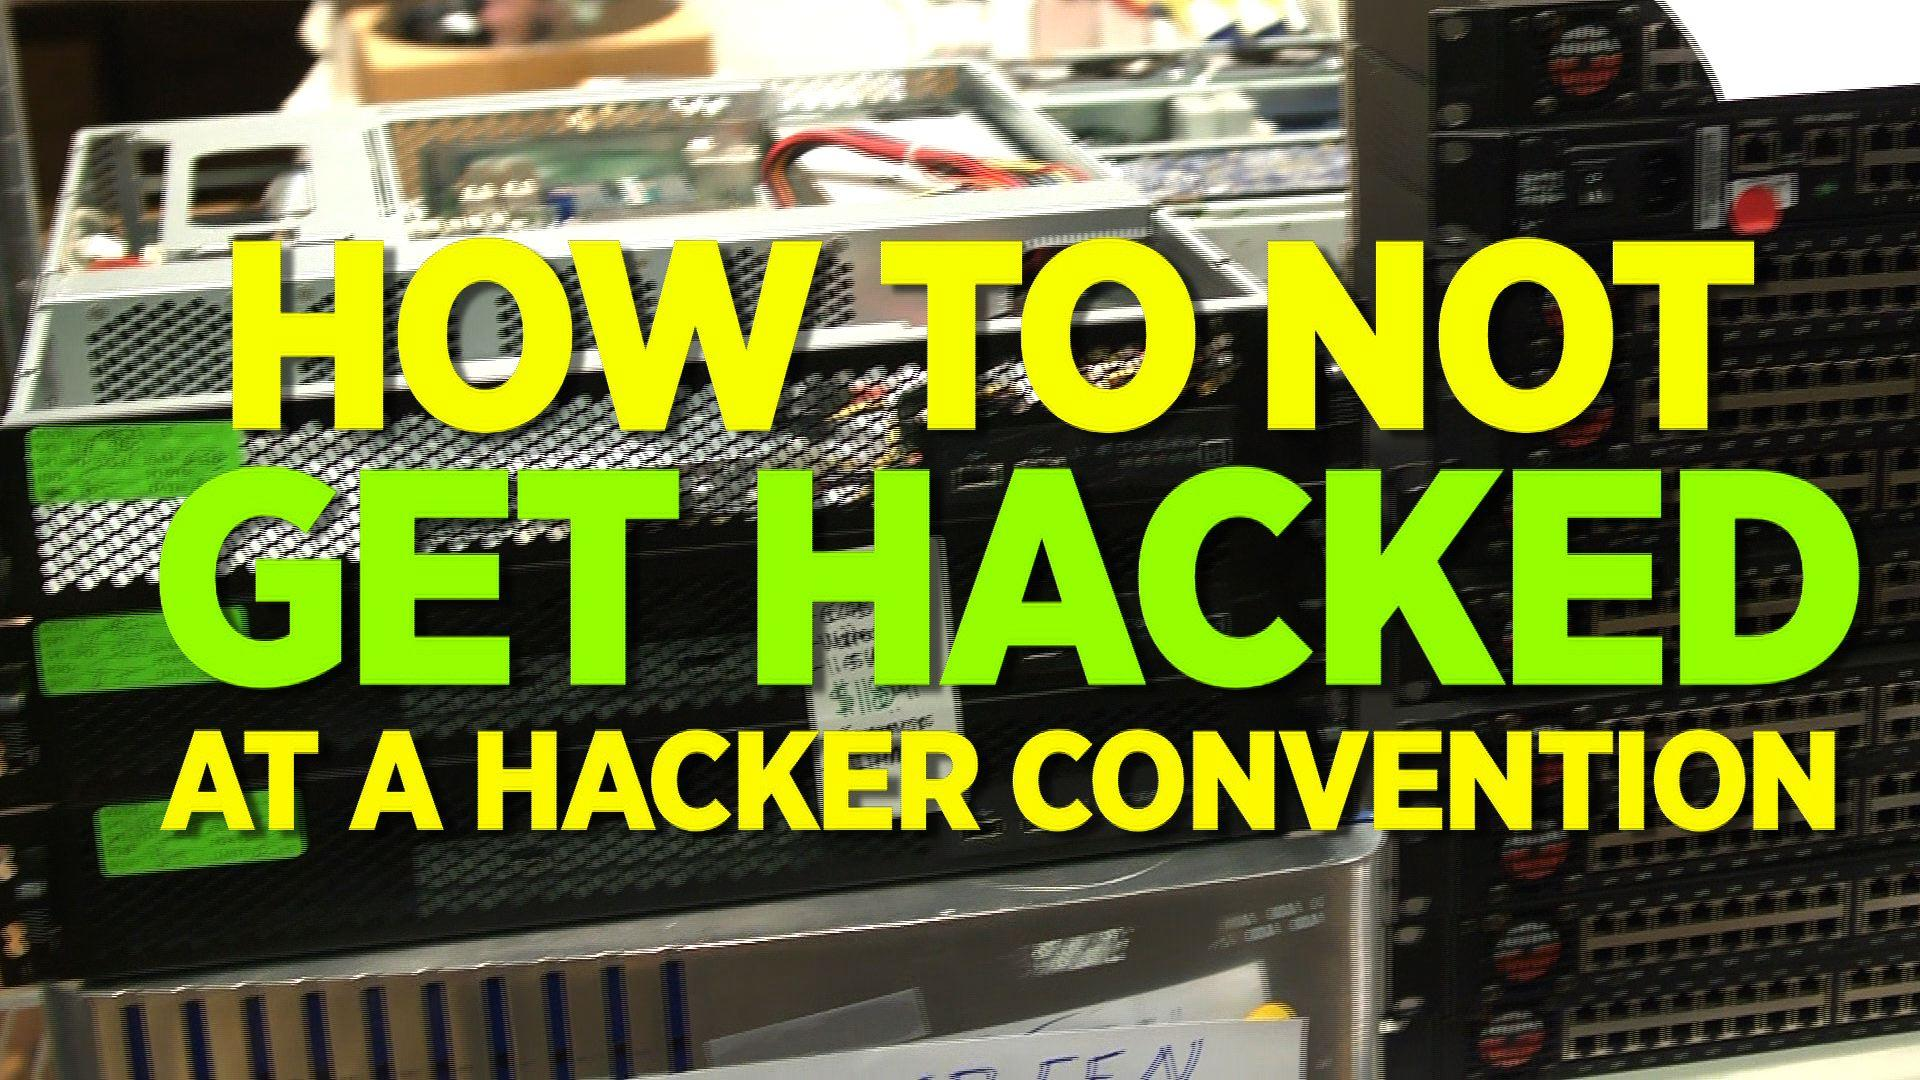 How To Not Get Hacked At A Hacker Convention